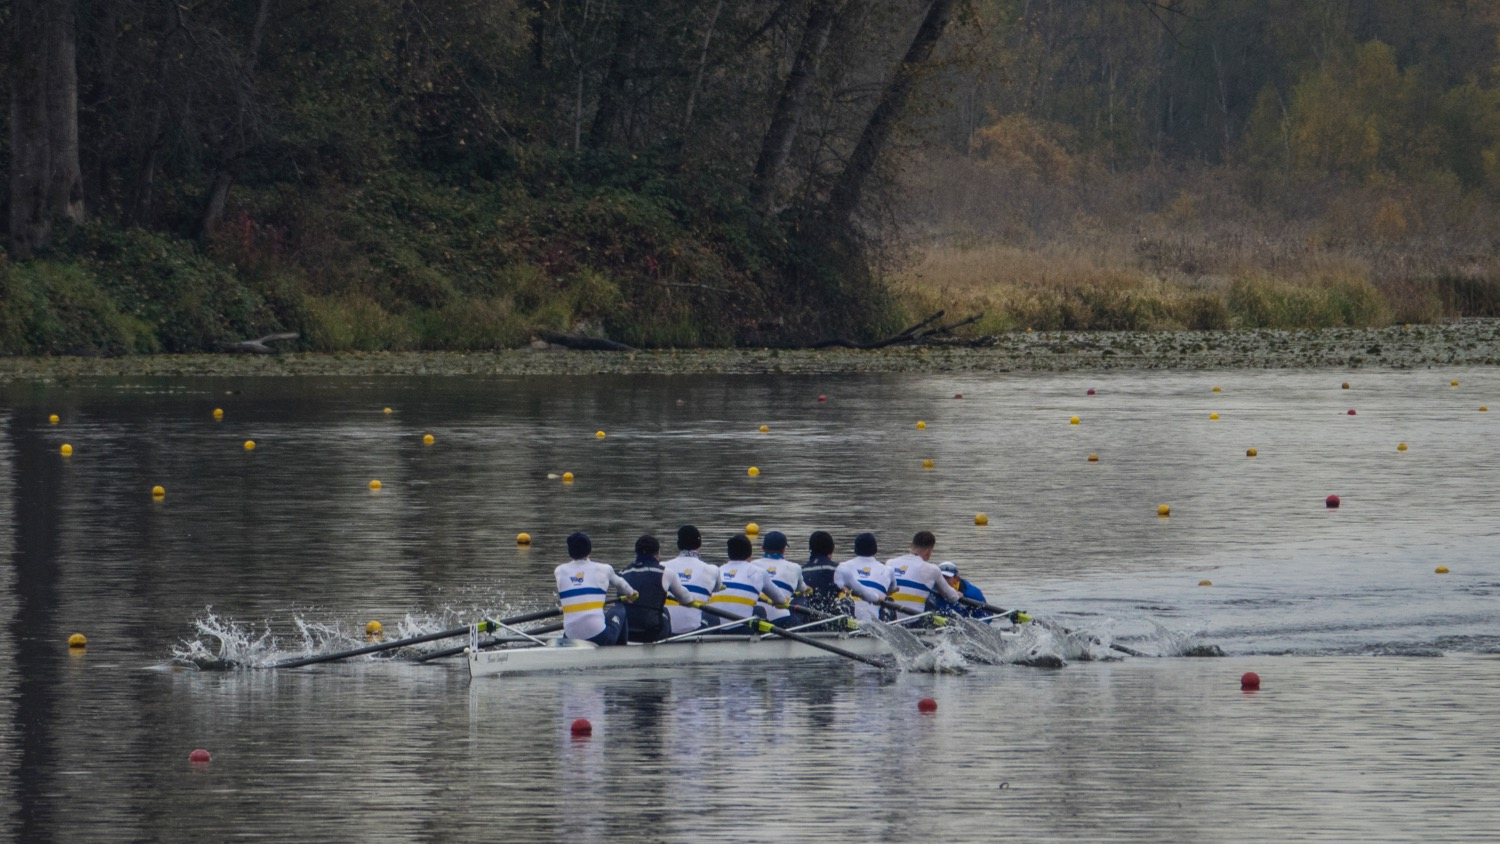 Alex's first race was the Men's 8s time trial. This was the first boat to come through, from UBC.